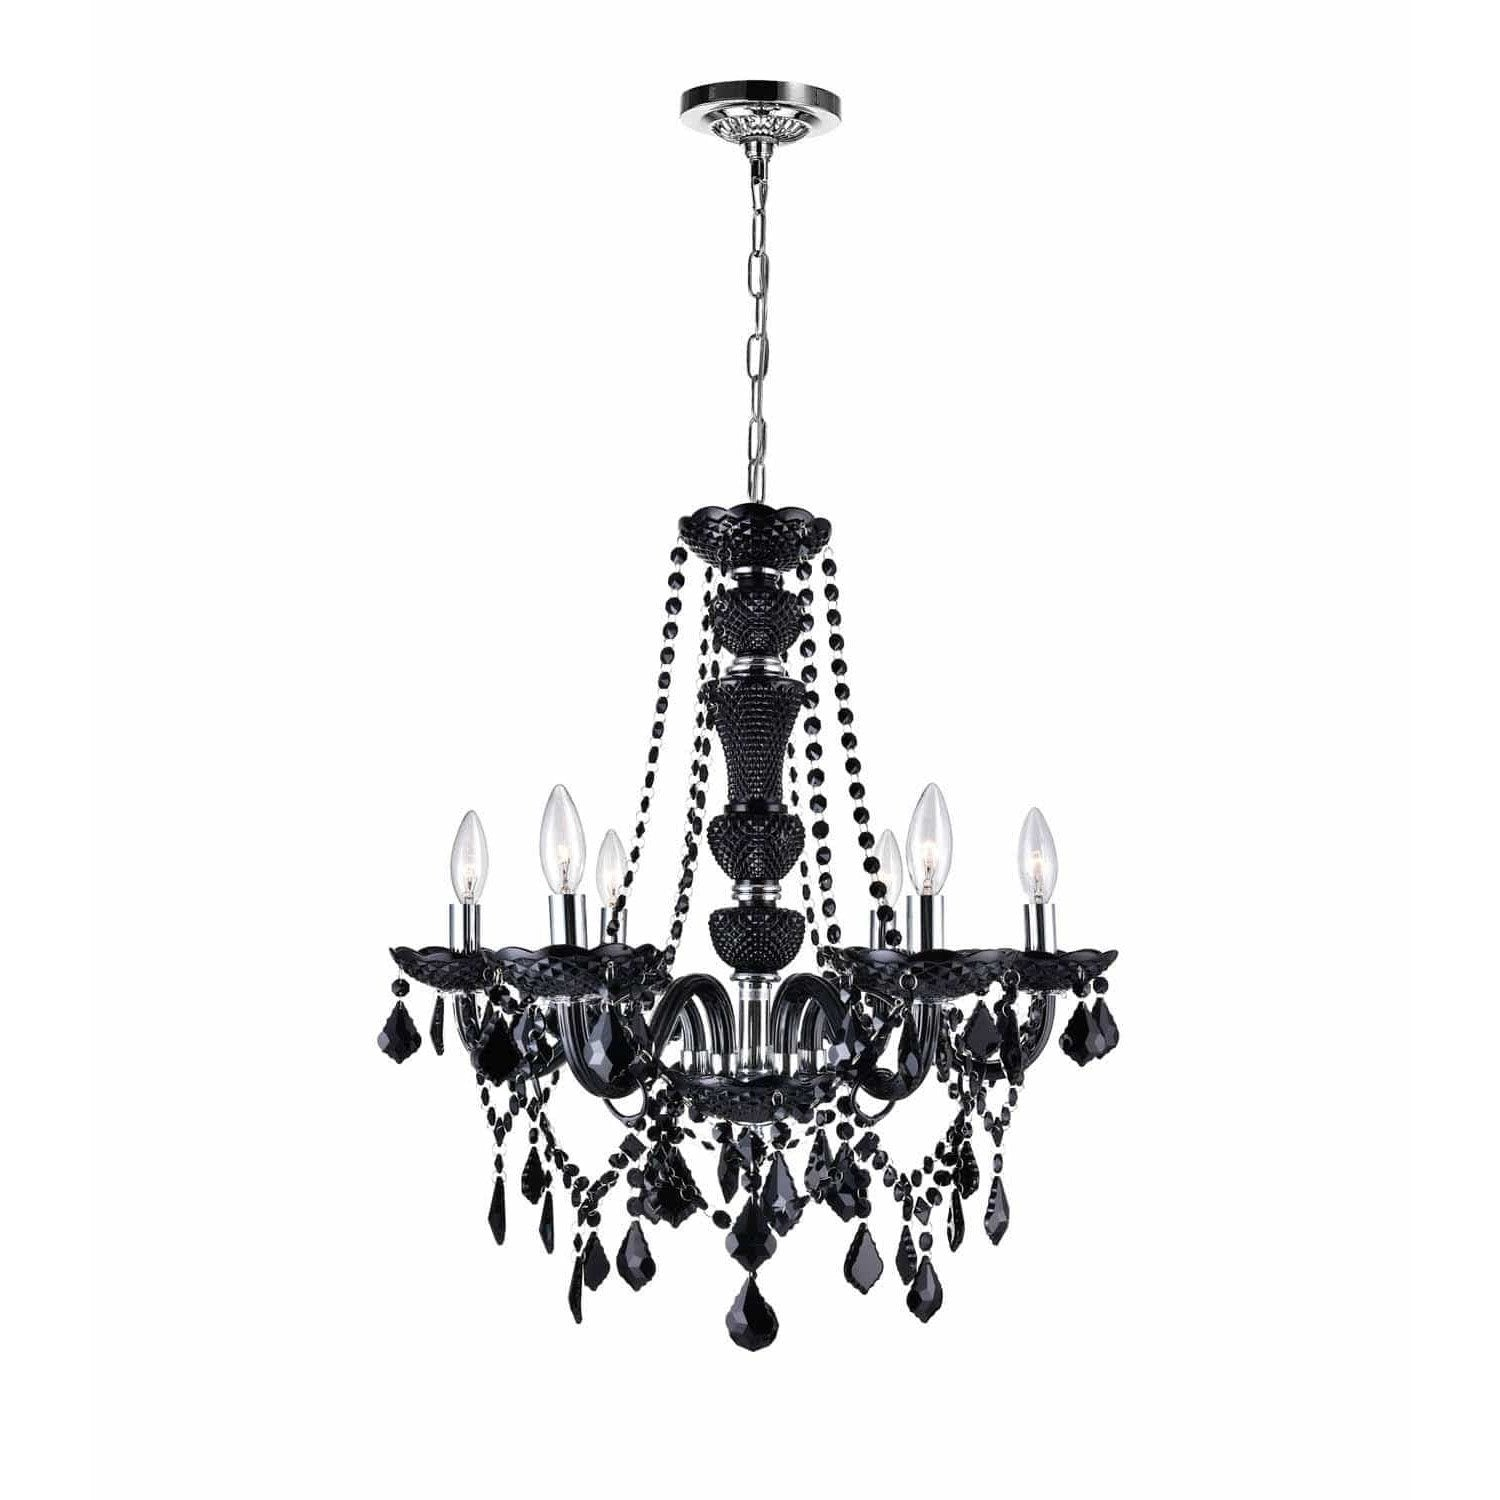 CWI Lighting Chandeliers Chrome / K9 Clear Princeton 6 Light Up Chandelier with Chrome finish by CWI Lighting 8268P22C-6-B